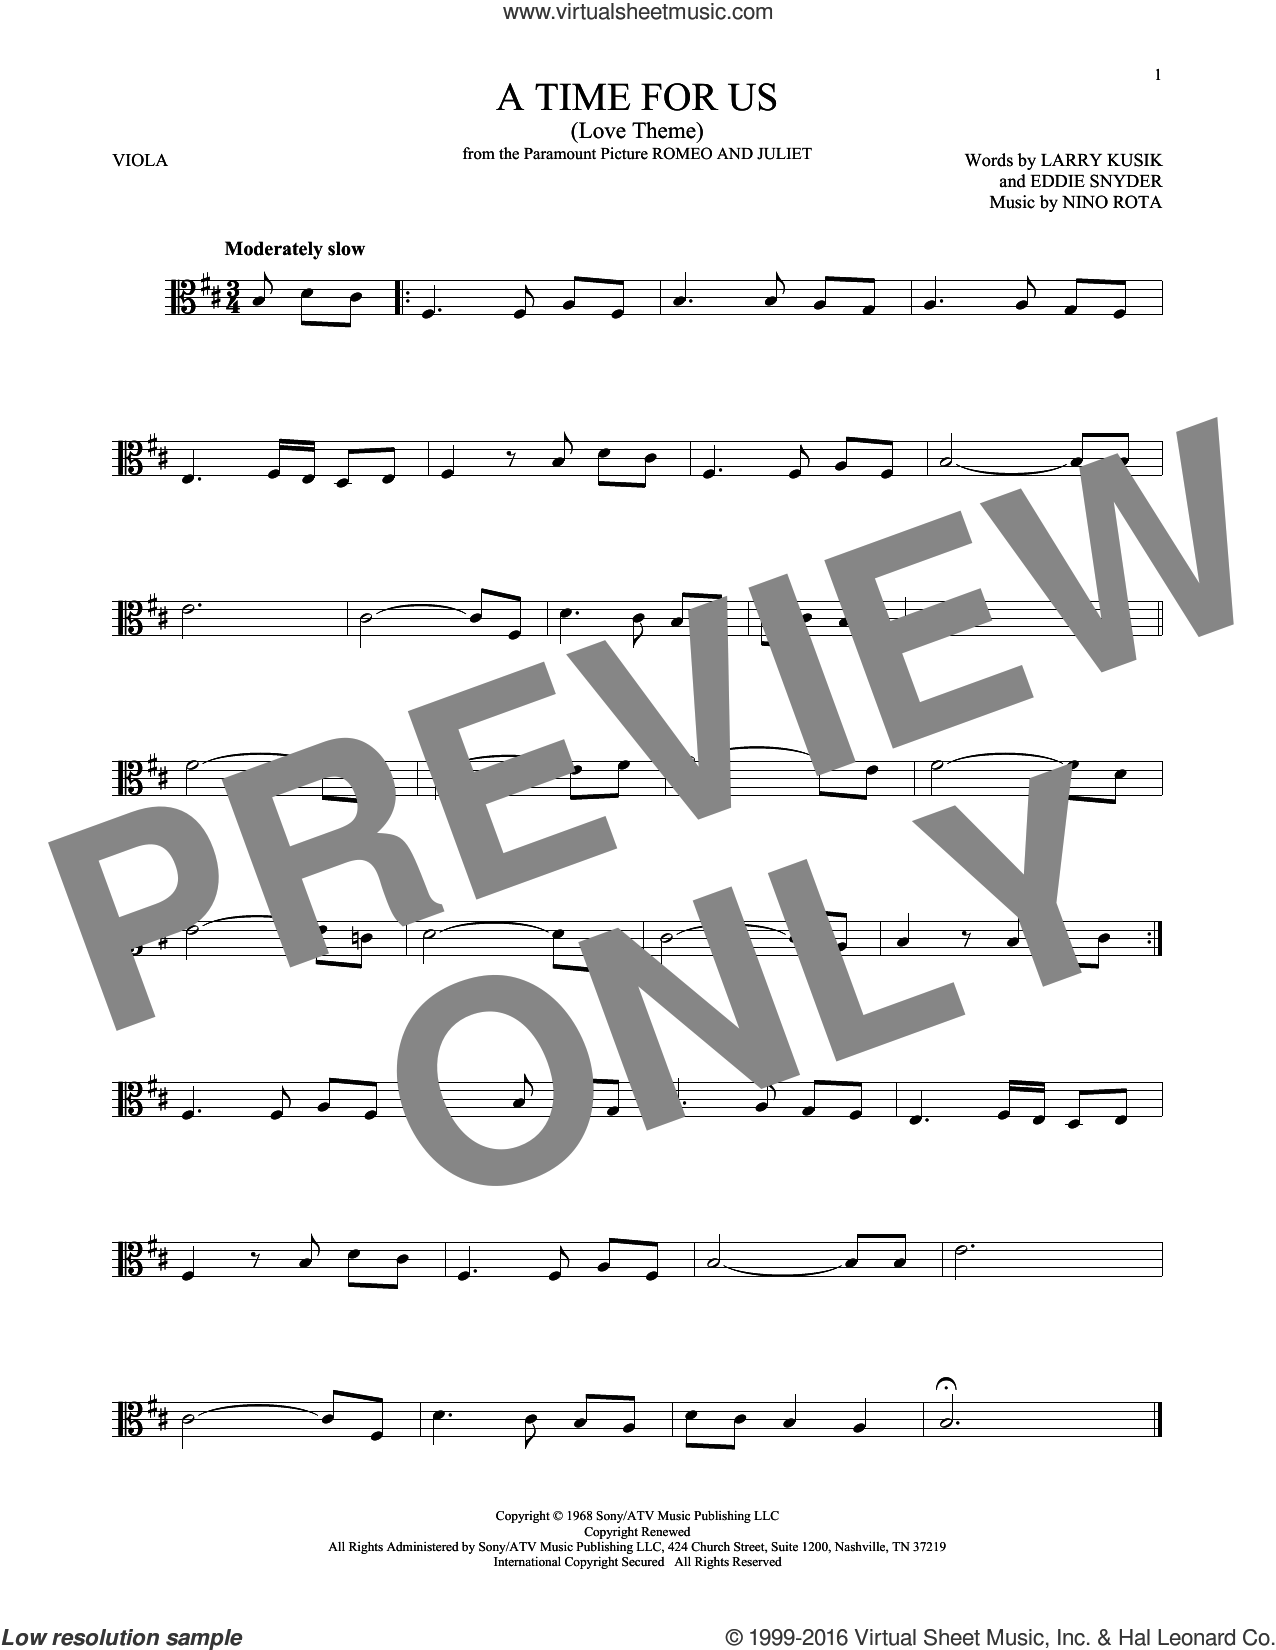 A Time For Us (Love Theme) sheet music for viola solo by Nino Rota, Eddie Snyder and Larry Kusik, intermediate skill level